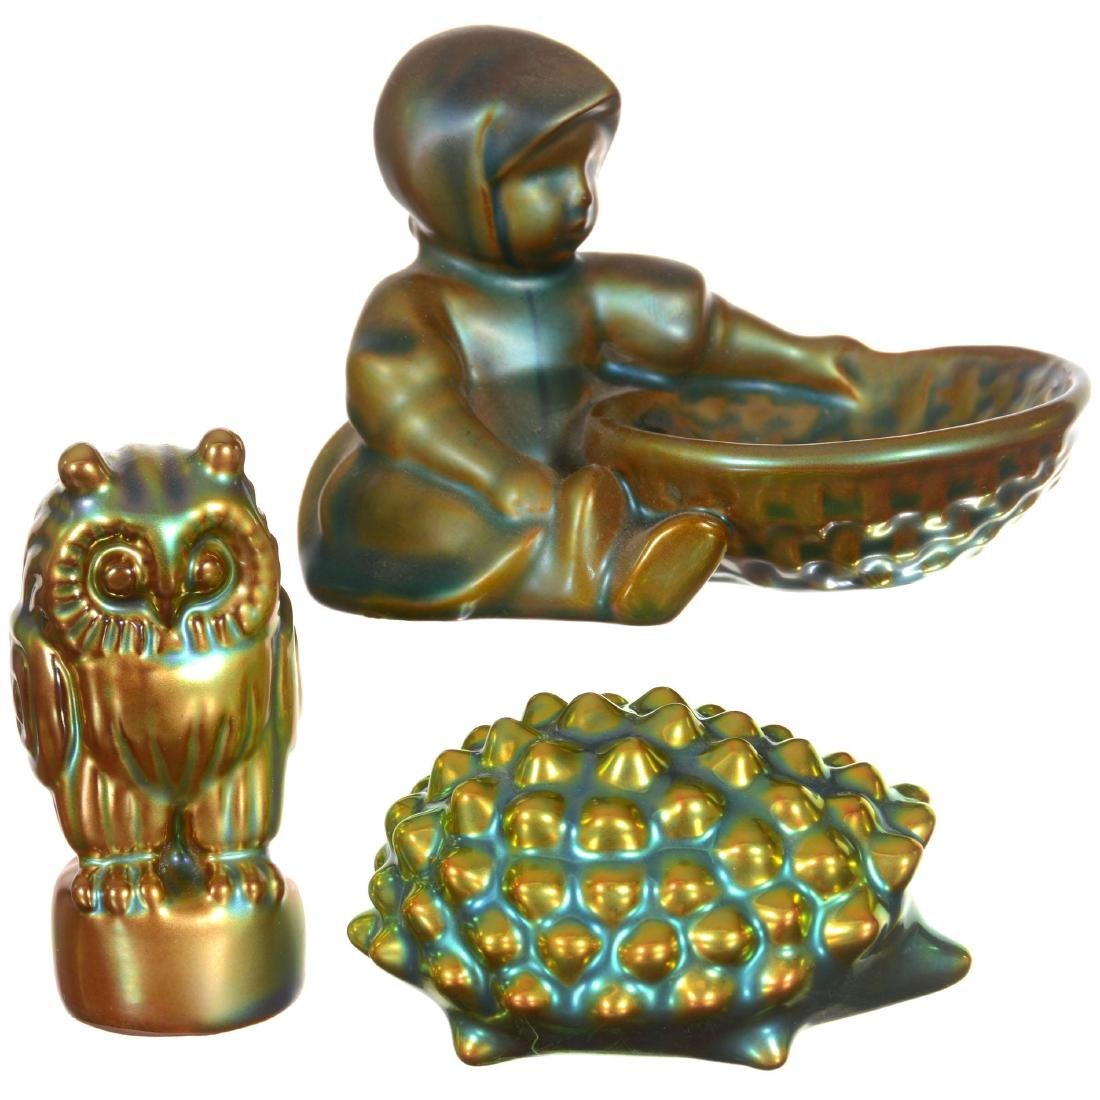 Three Marked Zsolnay Art Pottery Figural Items